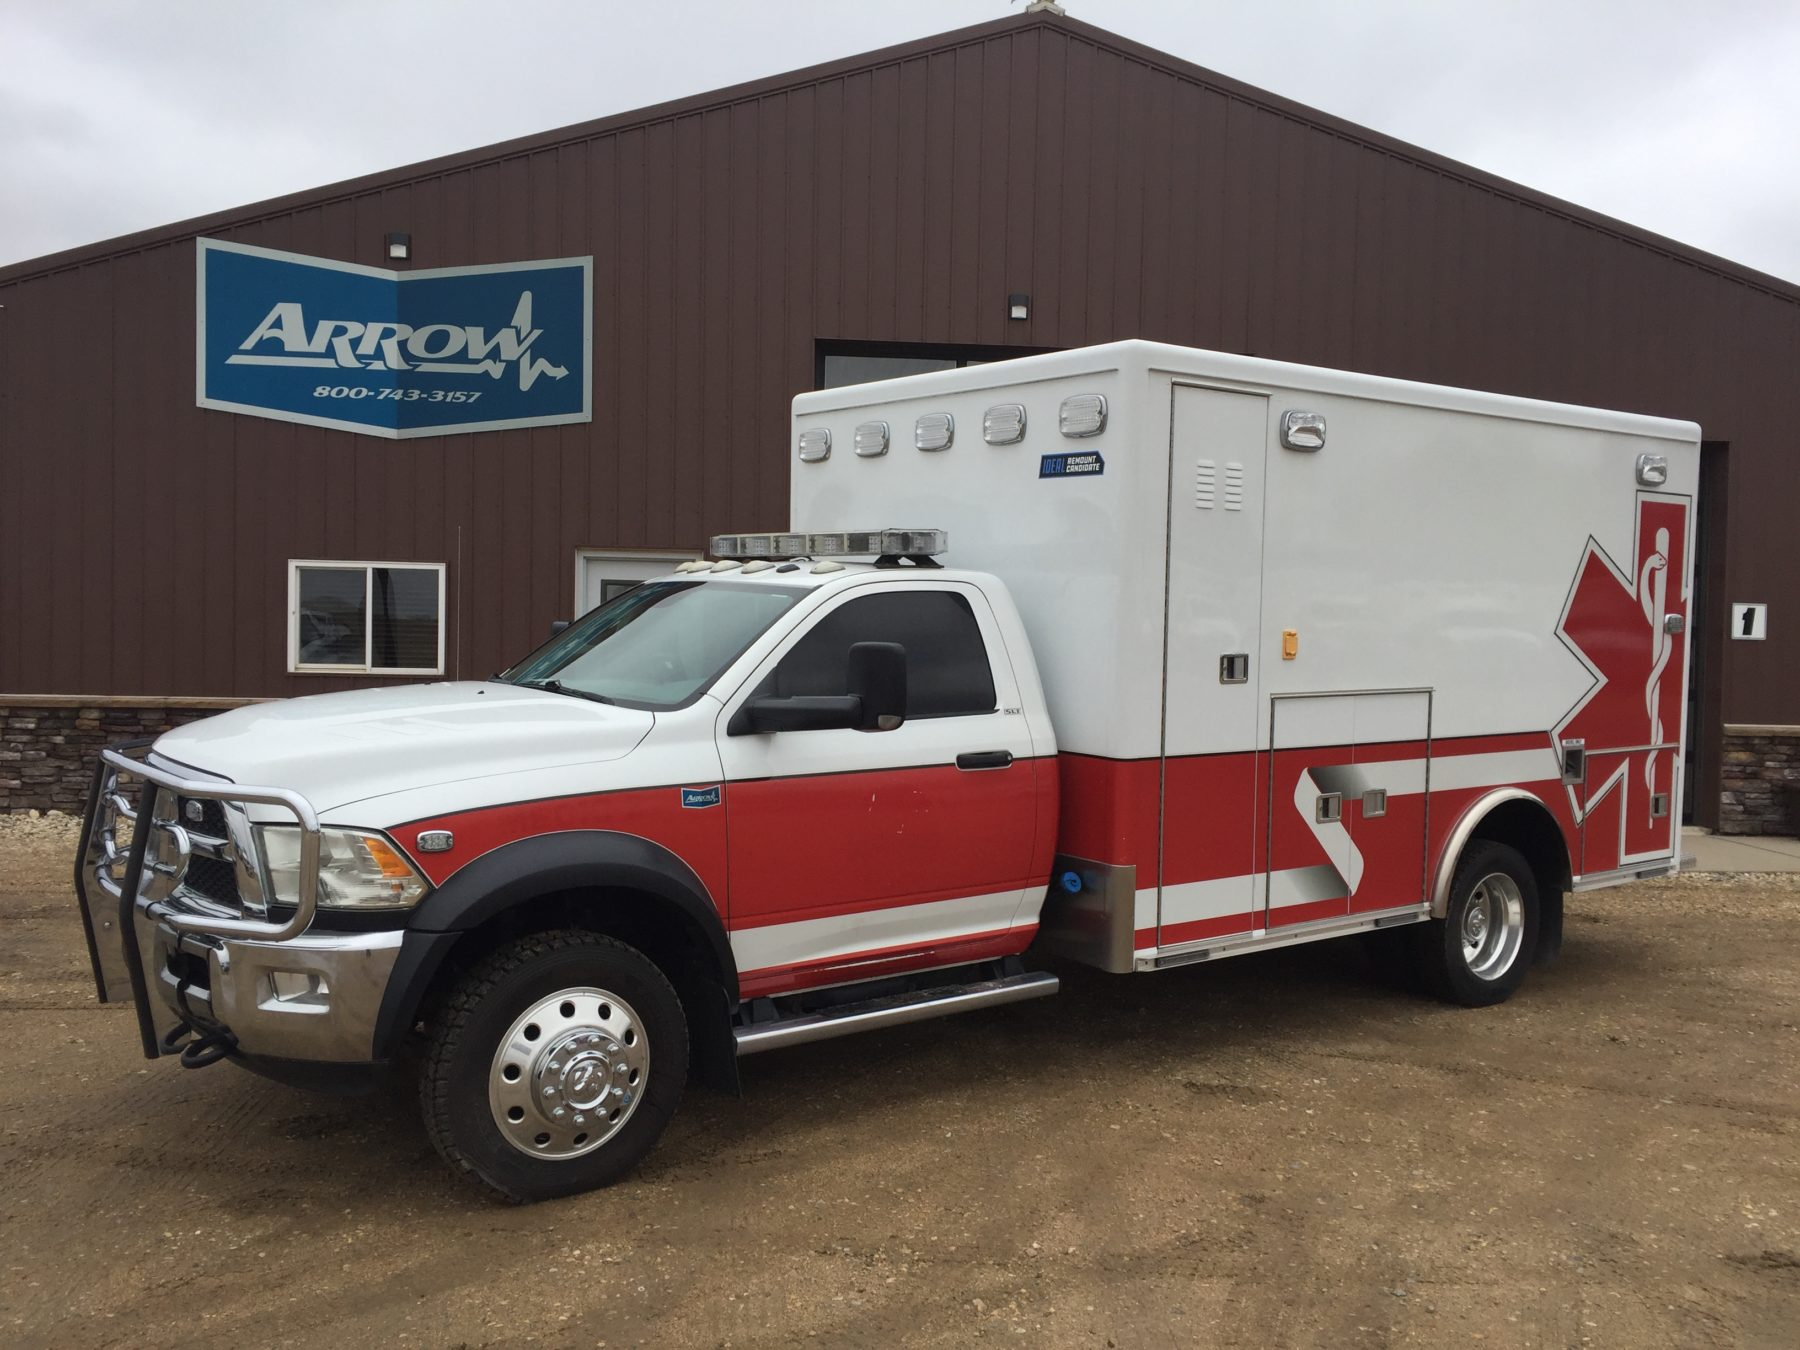 2015 Dodge 4500 4x4 Heavy Duty Ambulance For Sale – Picture 1